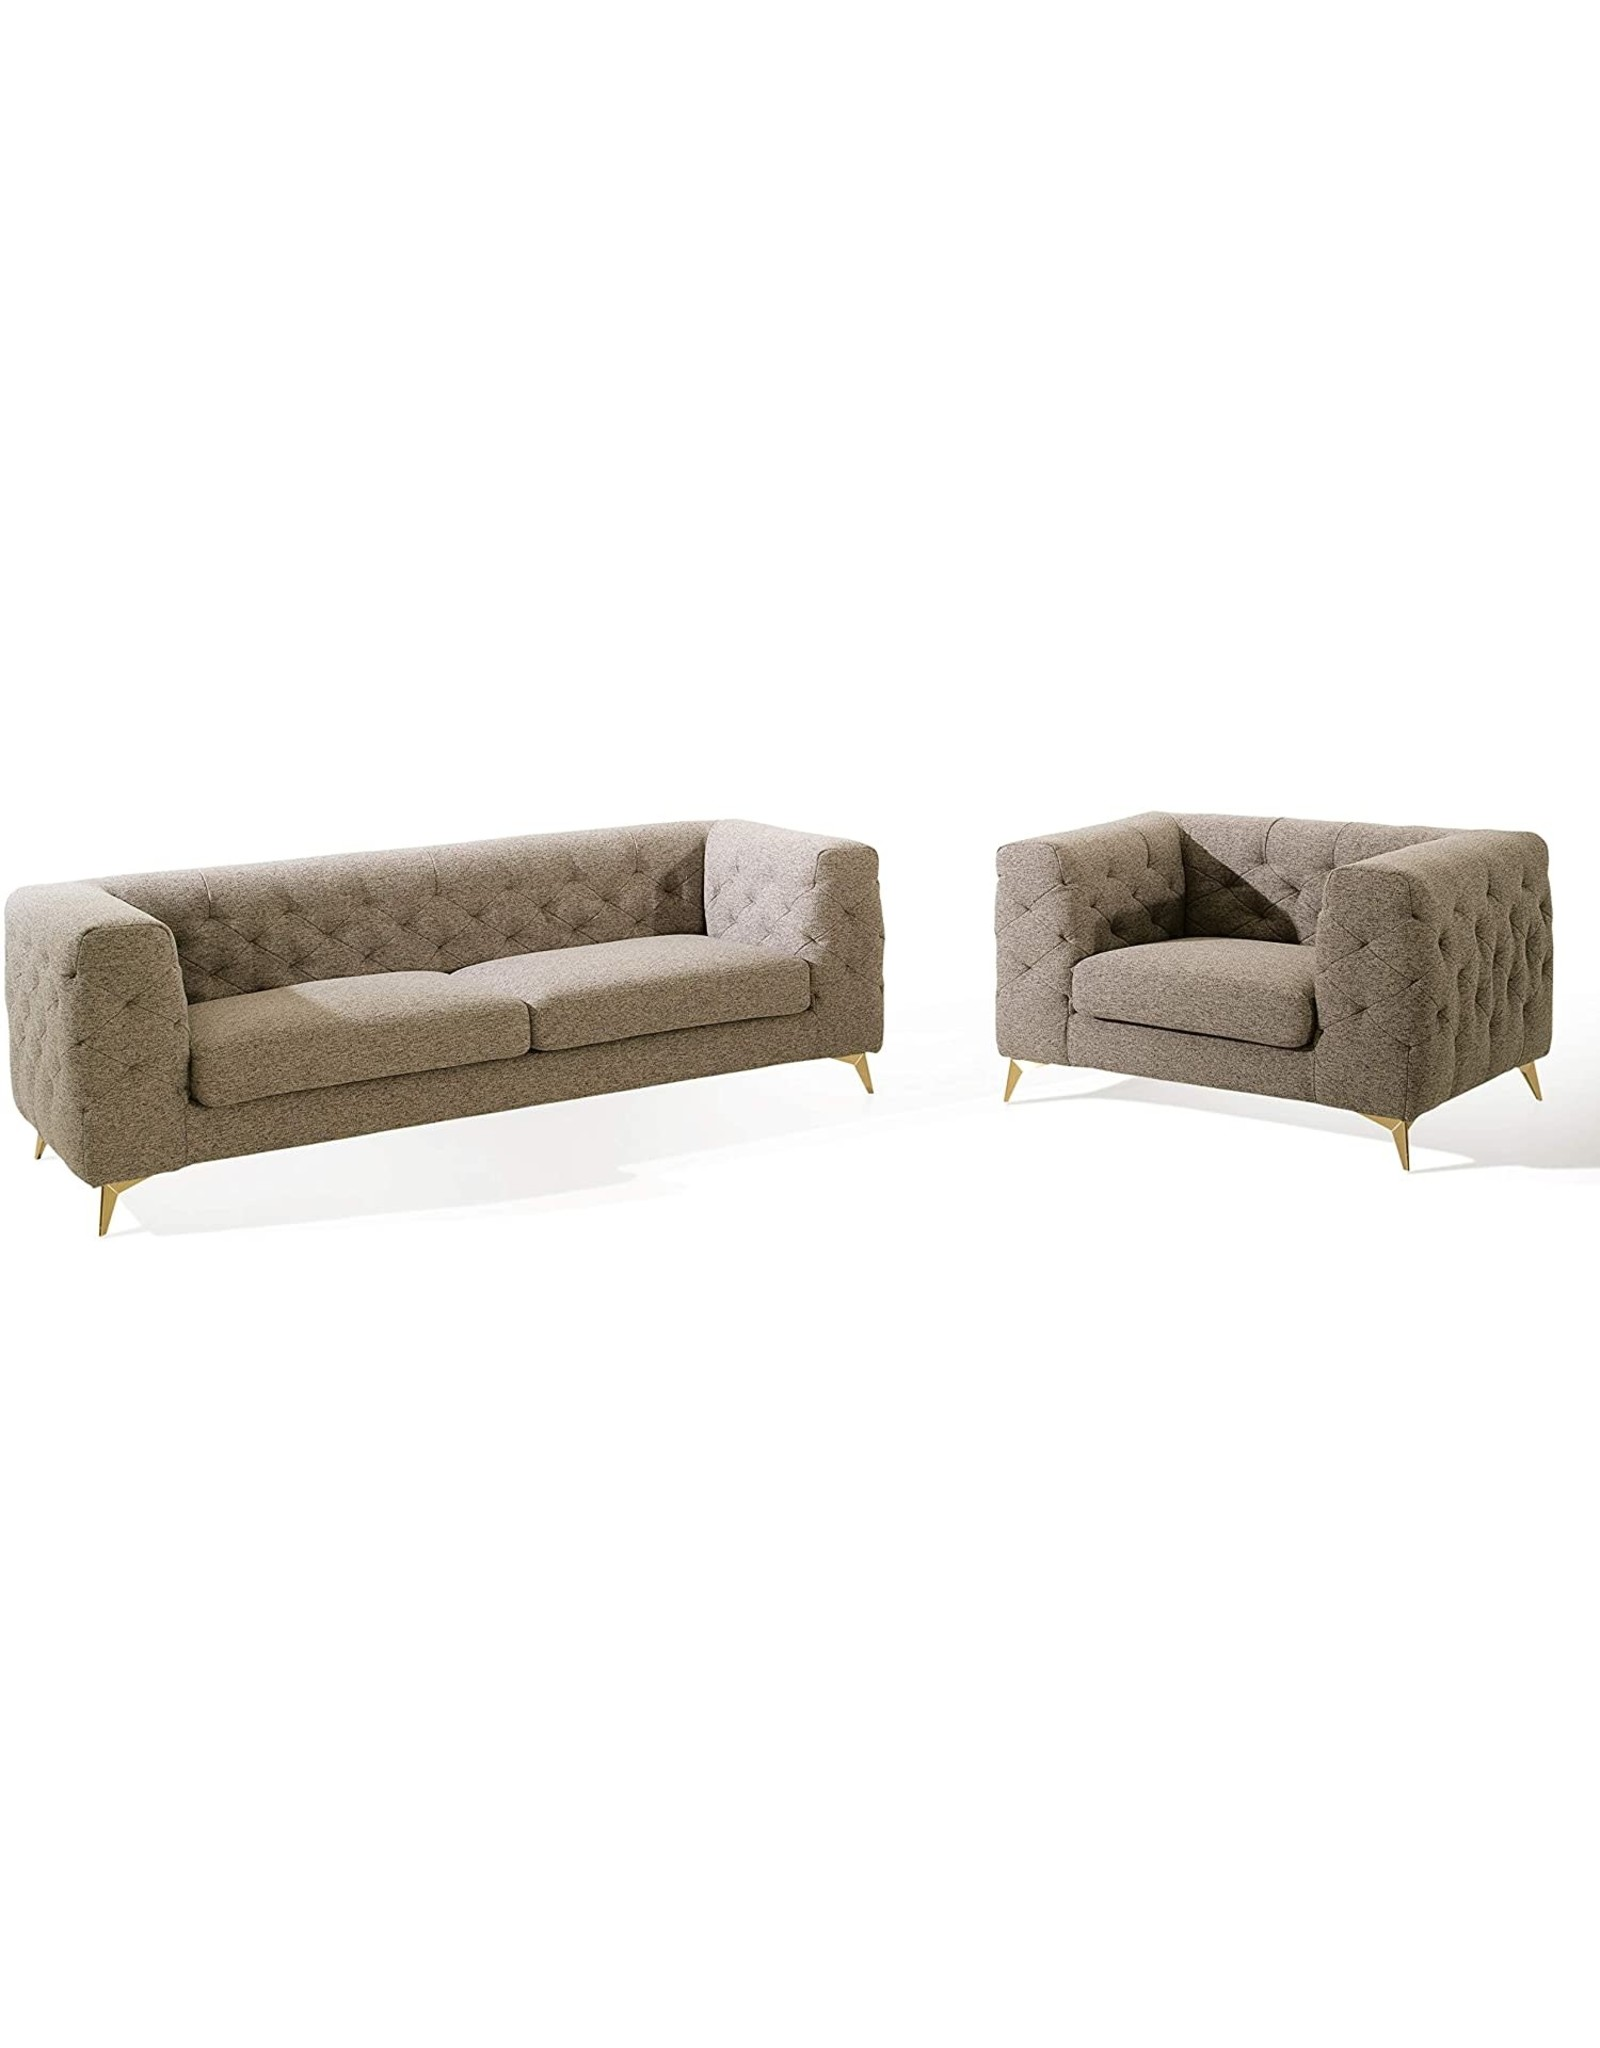 Iconic Home Iconic Home Soho Accent Club Chair Linen Textured Upholstery Plush Tufted Shelter Arm Solid Gold Tone Metal Legs Modern Transitional, SANDY